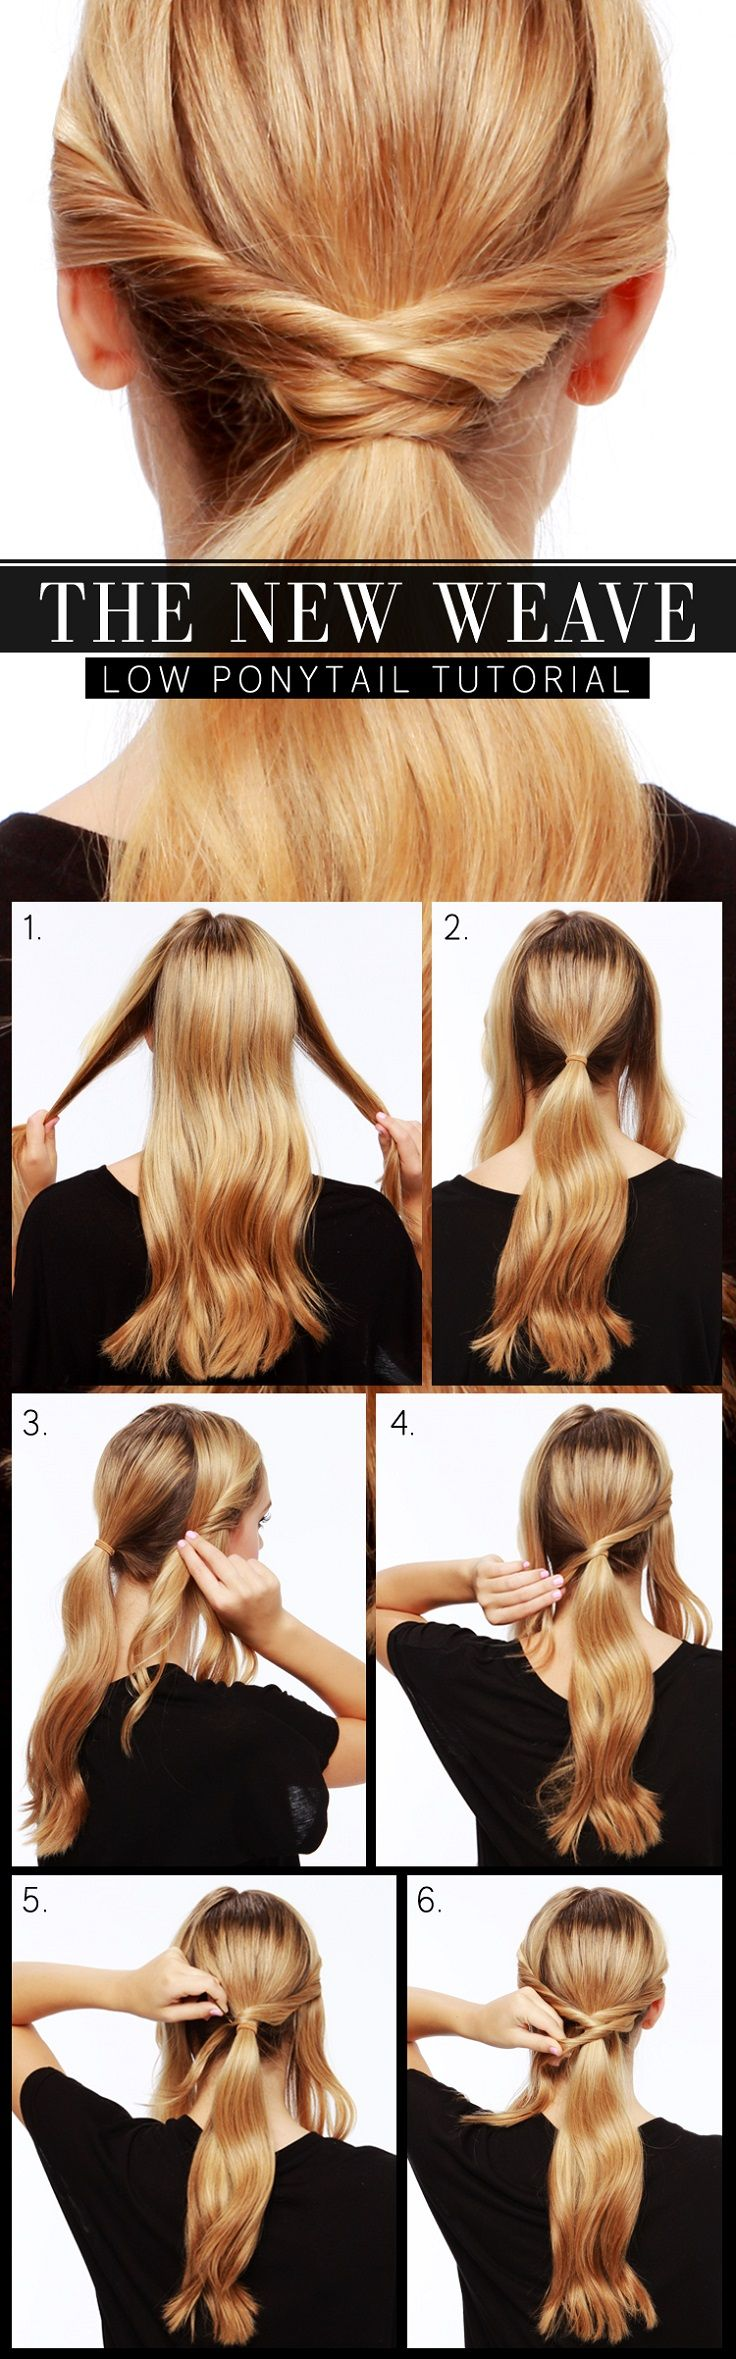 5 Braid Pony And Bun Hairstyles For Busy Nurses Scrubs The